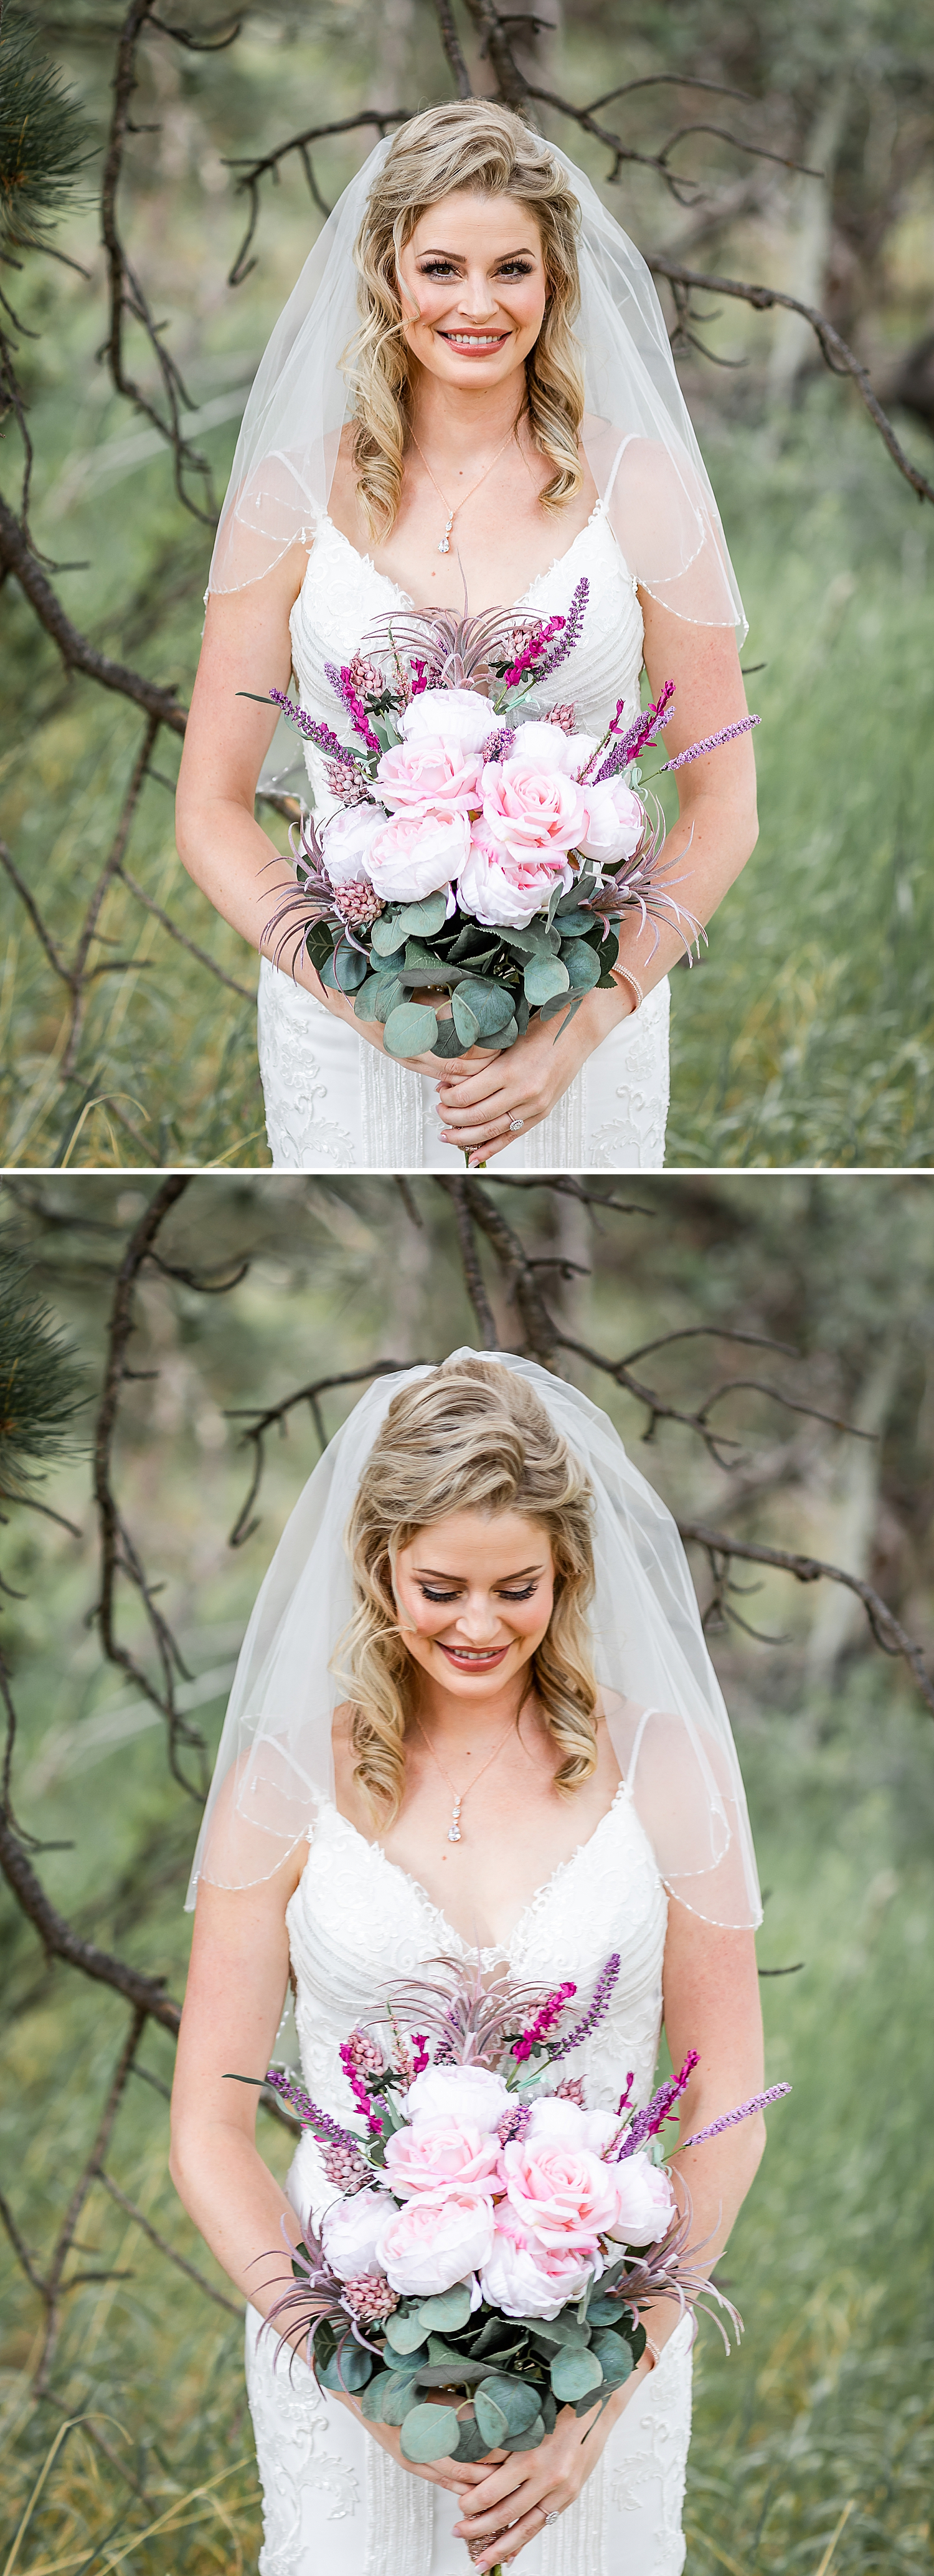 Carly-Barton-Photography-Rocky-Mountain-National-Park-Estes-Park-Wedding-Elopement_0060.jpg